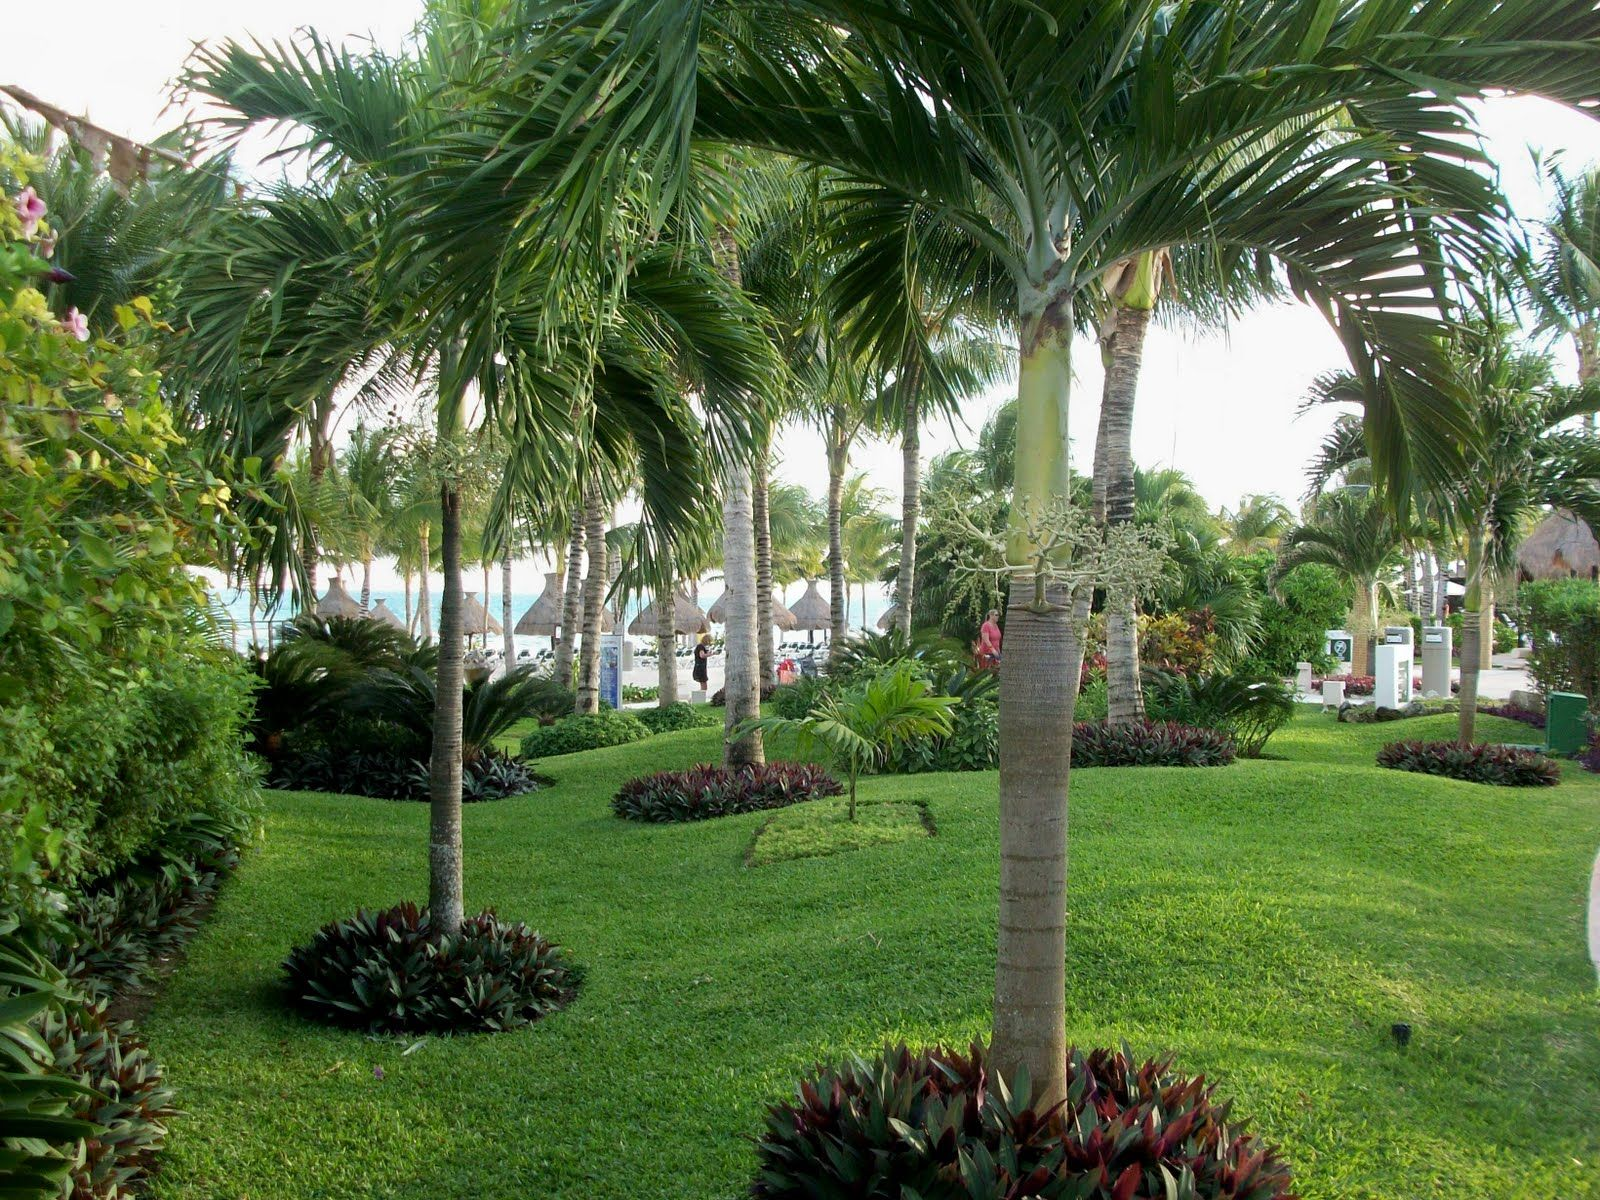 The society of real estate appraisers believes that for Landscaping plants